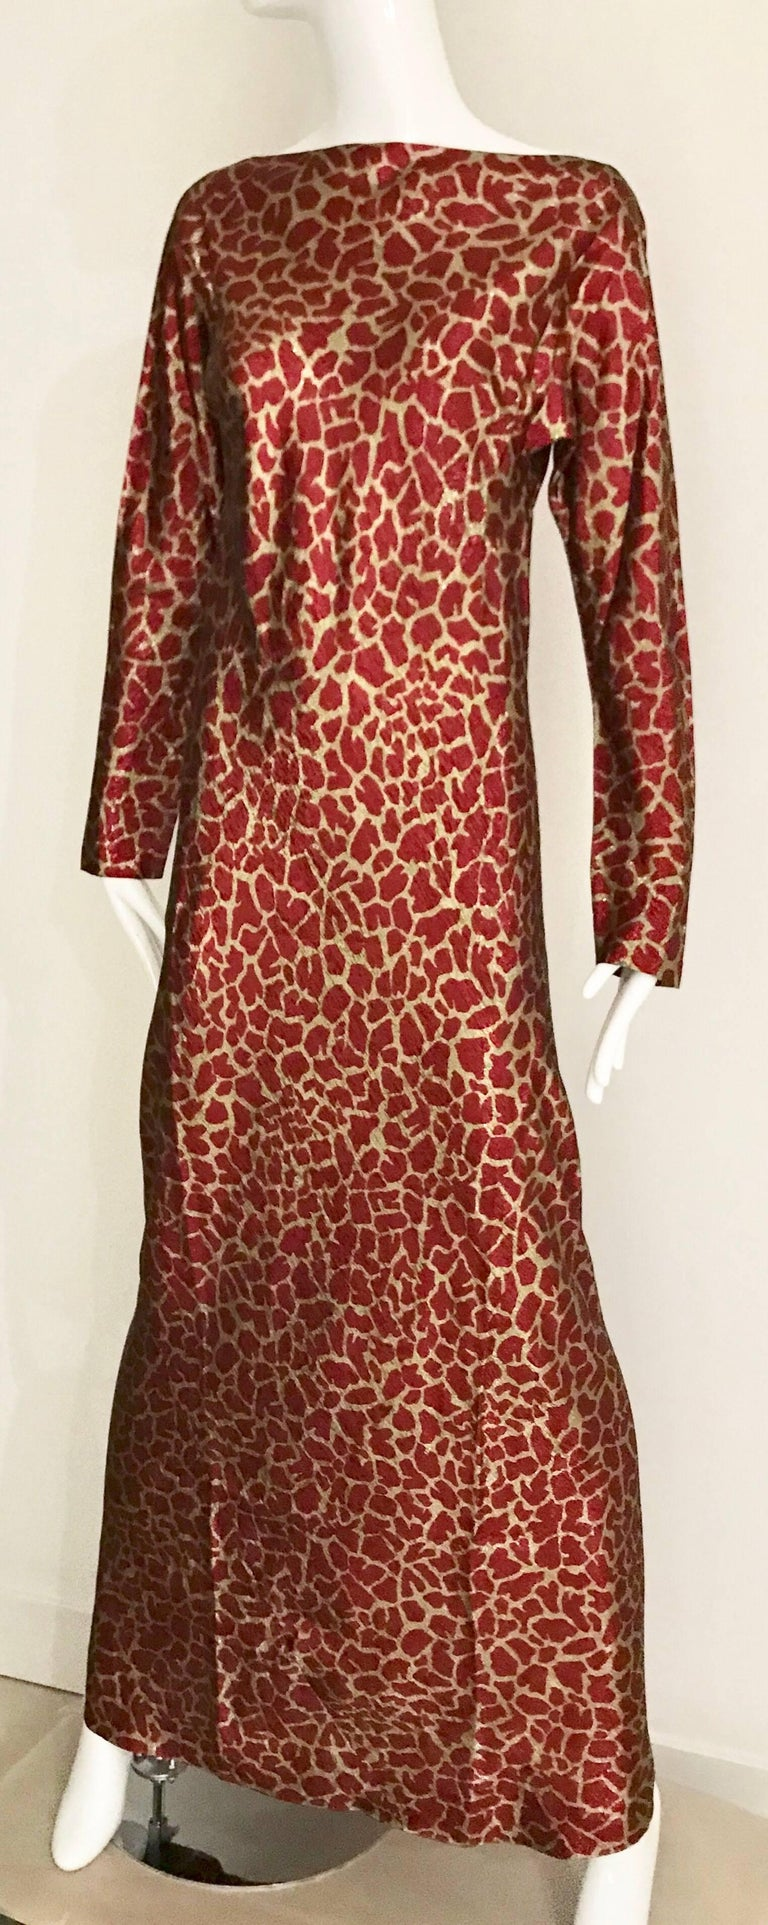 HALSTON 1970s Red and Gold Metallic Print Silk Lamè Bias Cut Dress 3